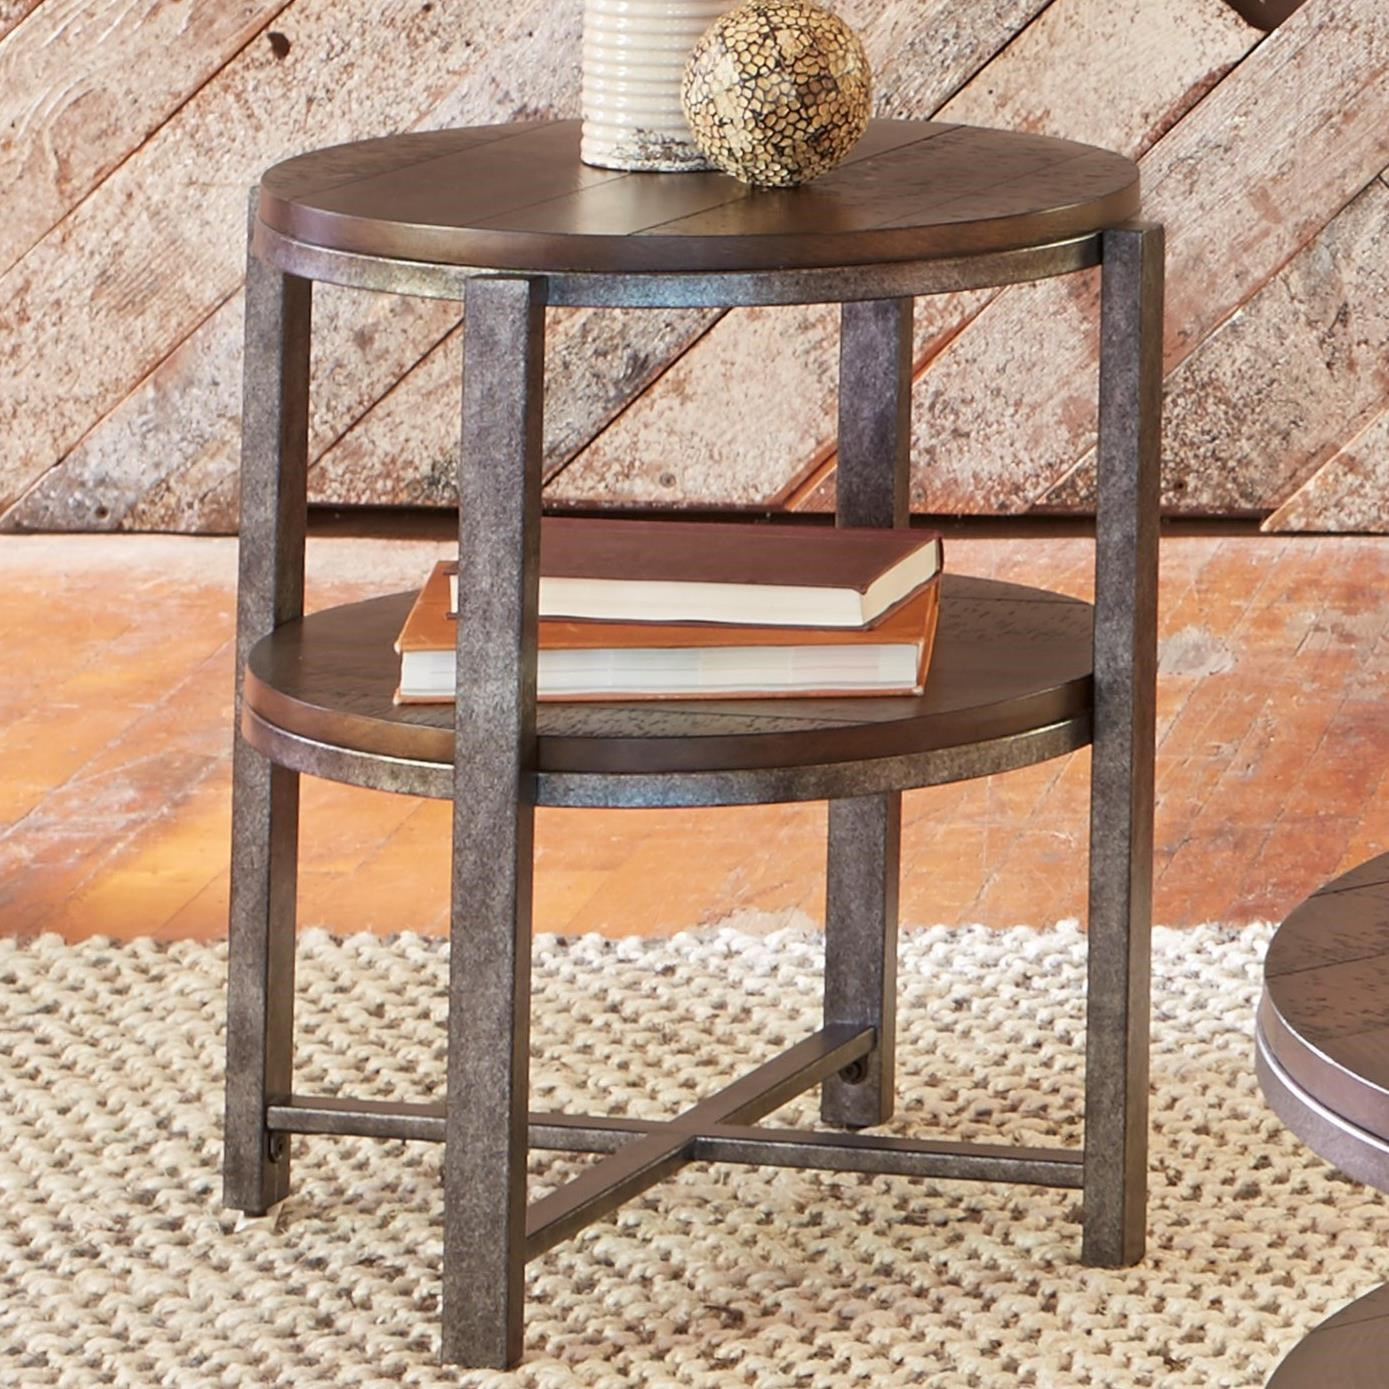 Breckinridge Round End Table by Liberty Furniture at Northeast Factory Direct